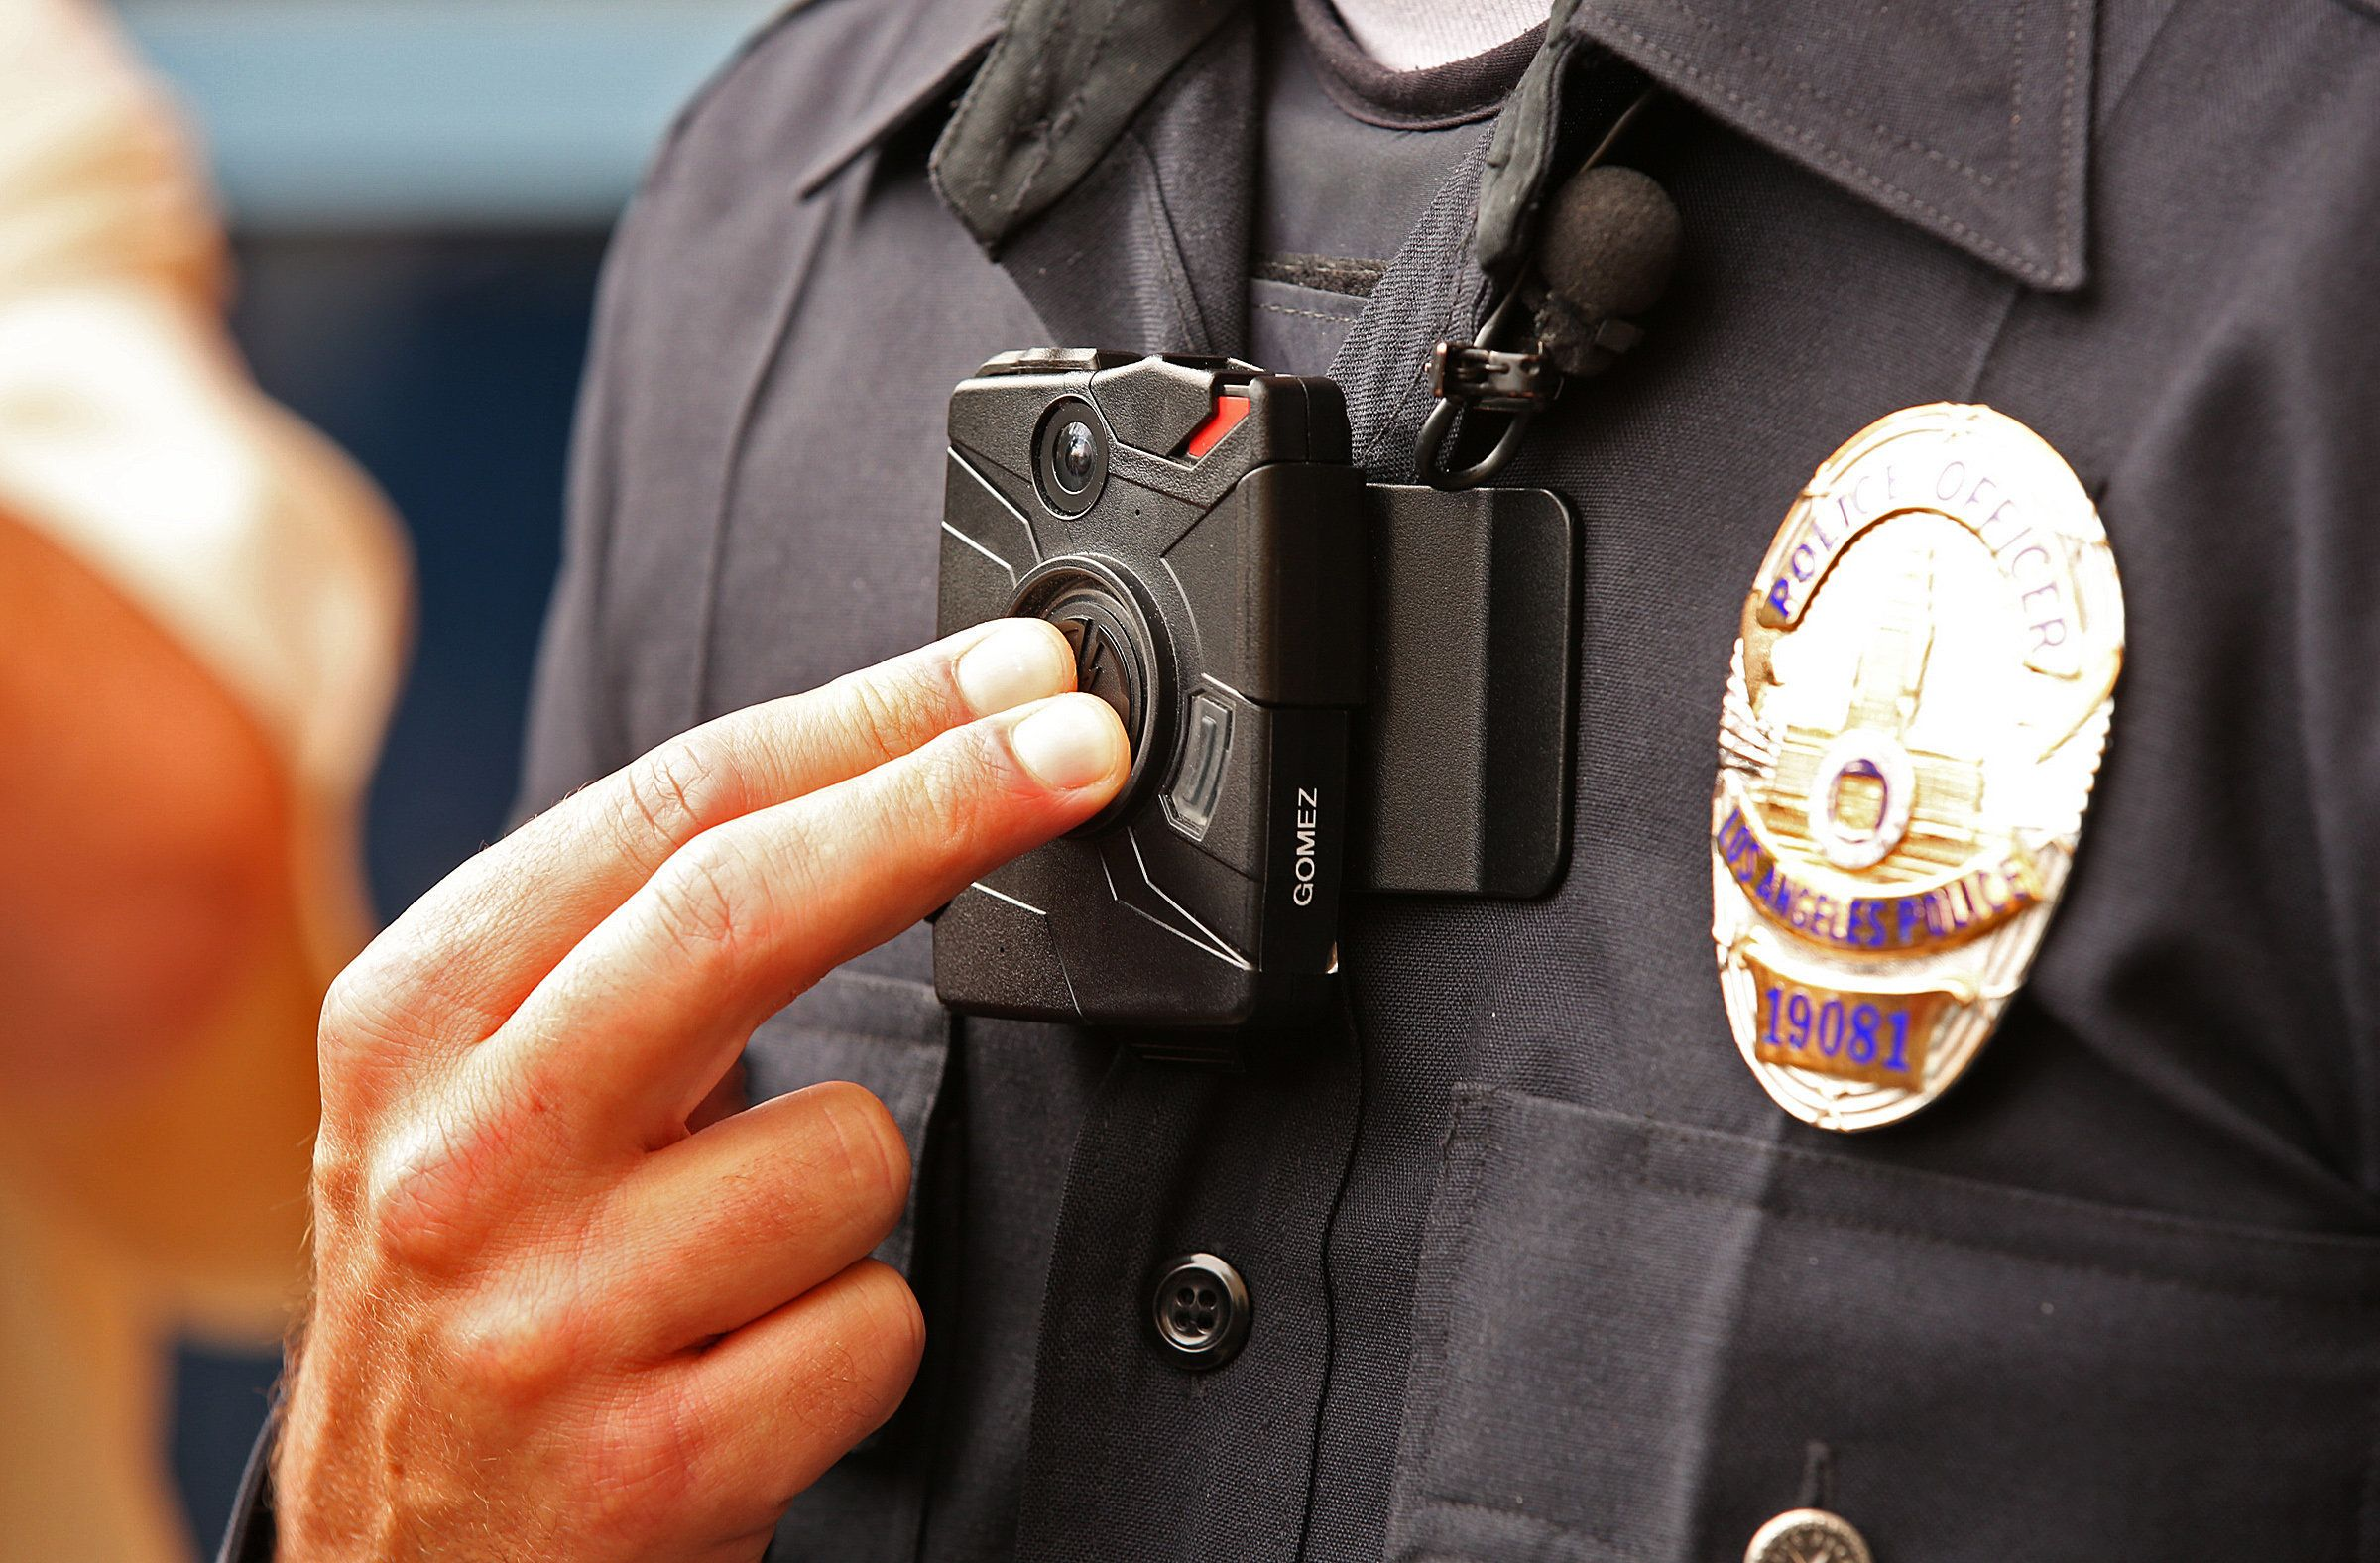 An LAPD officer demonstrates how to use one of the department's new body cameras during a Sept. 4 press conference.